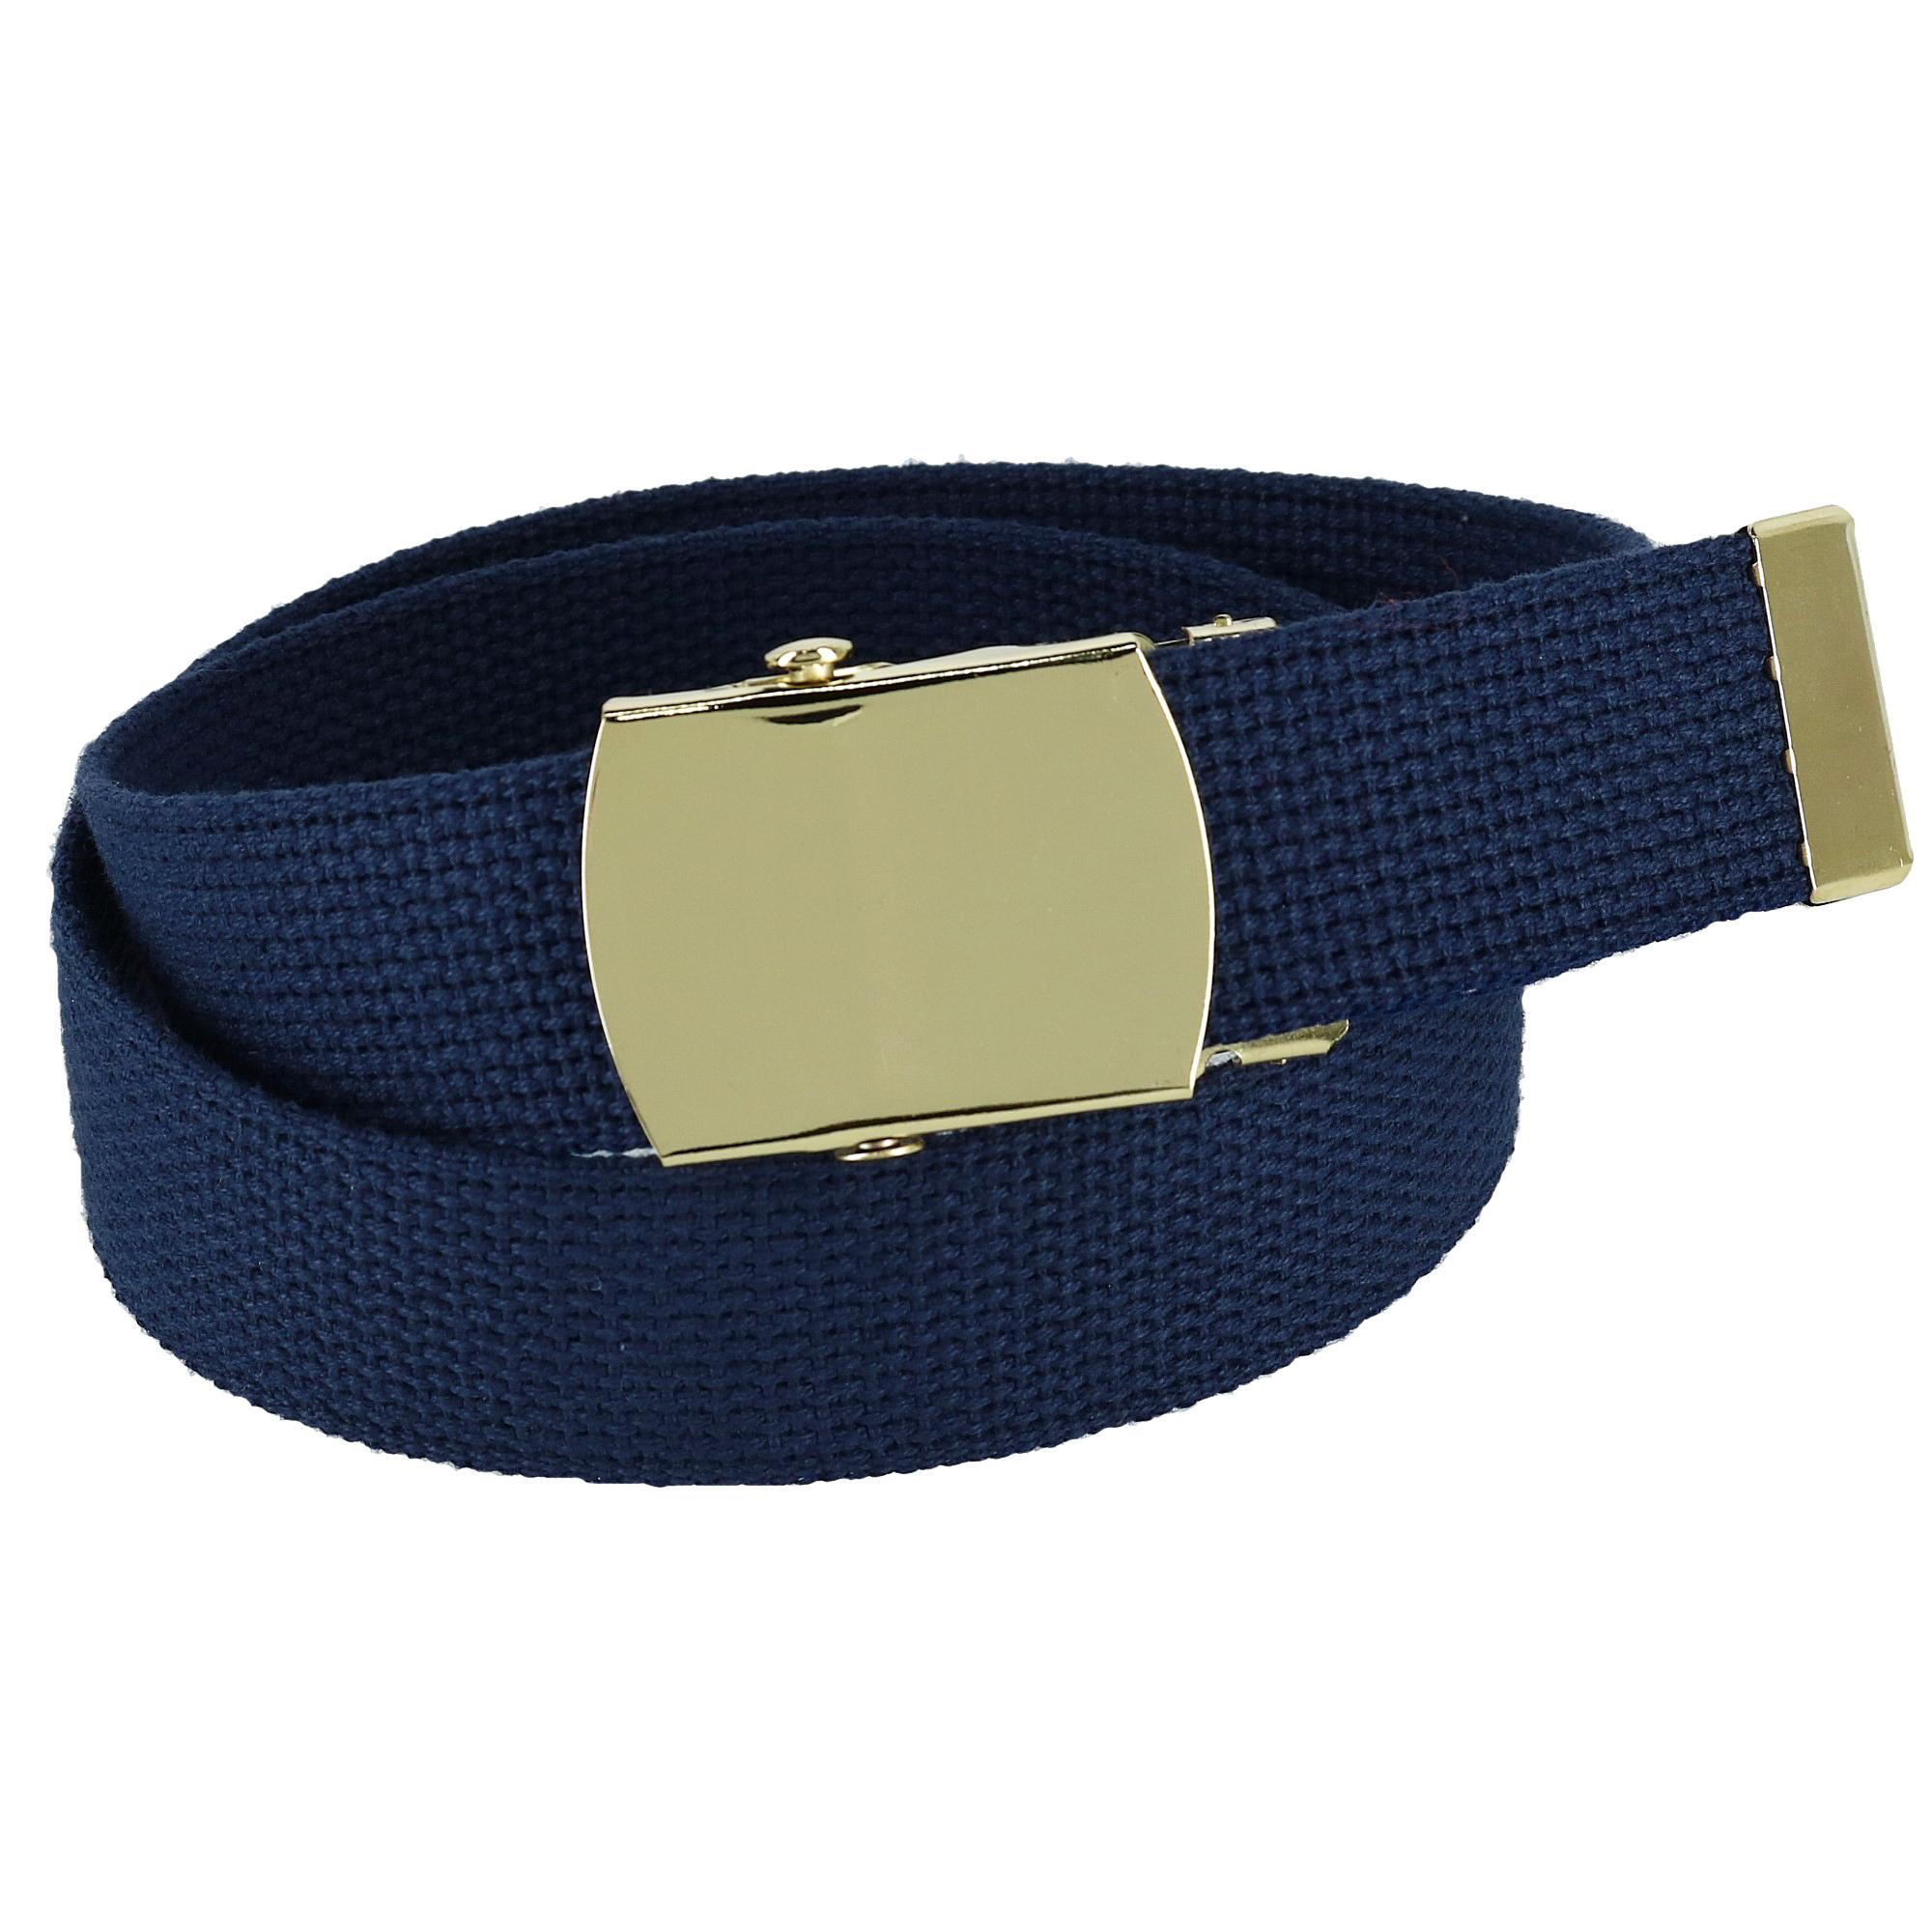 CTM_Kids_Cotton_Adjustable_Belt_with_Brass_Military_Buckle_